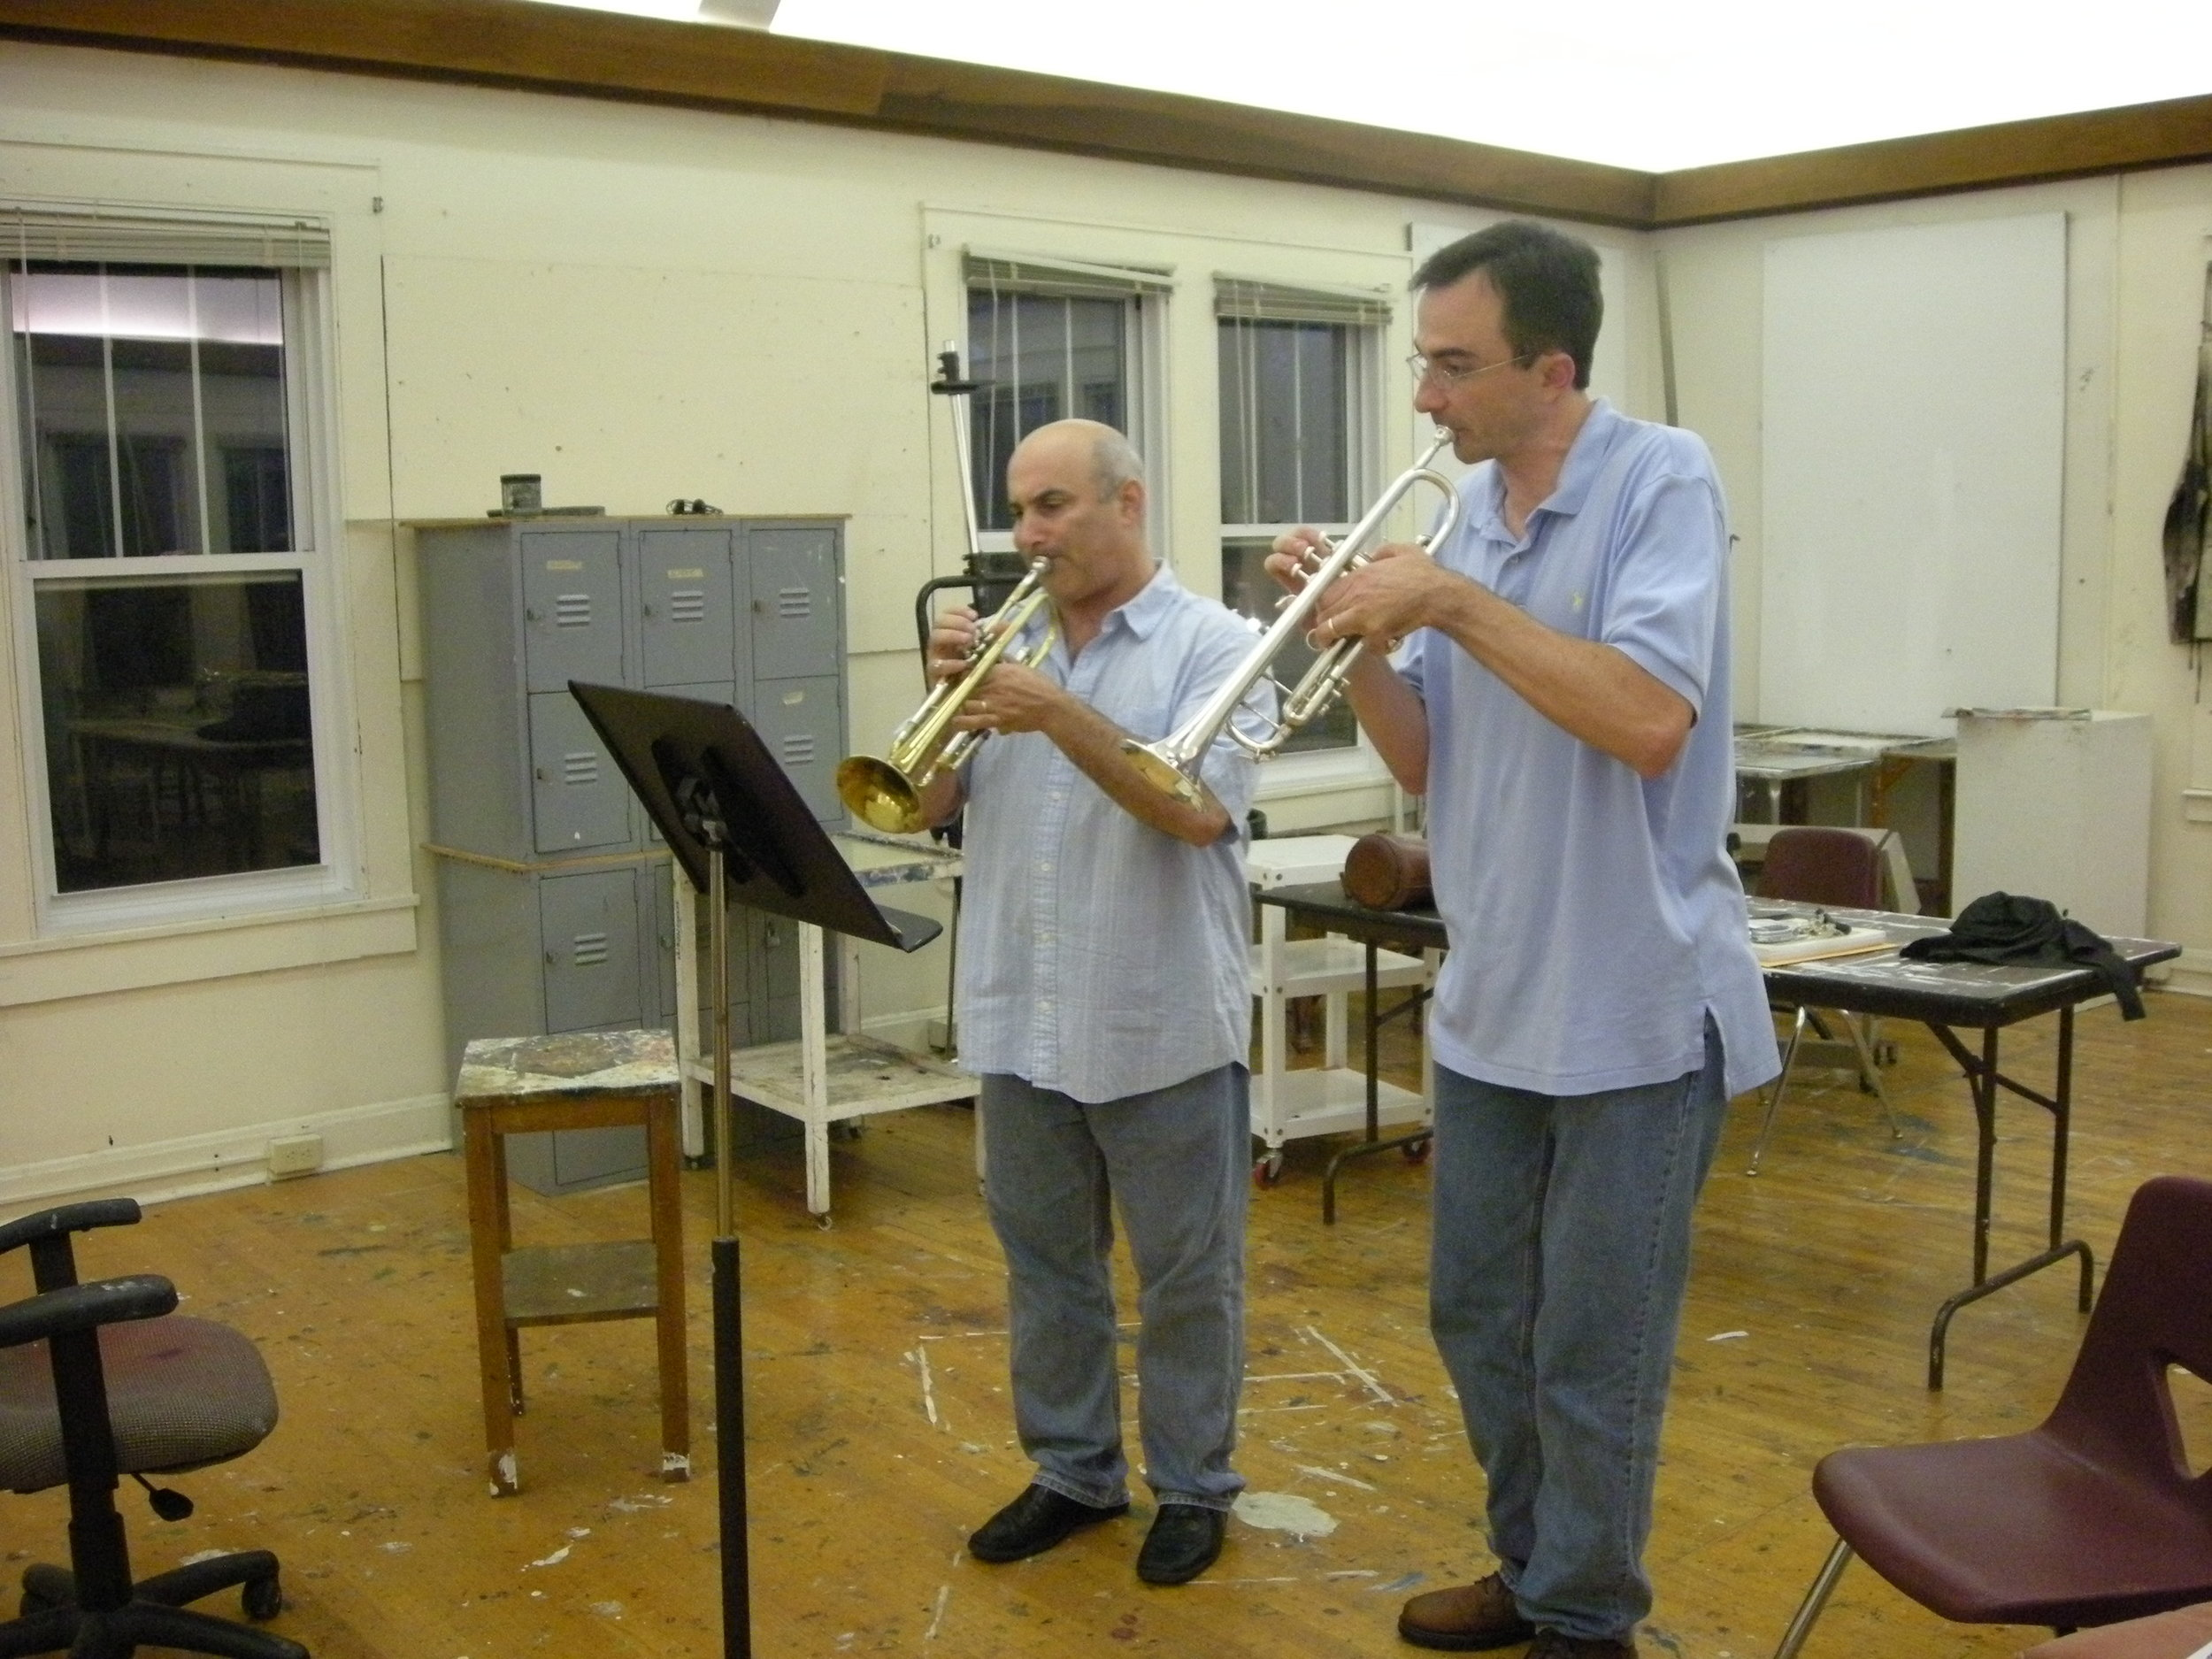 Duets with Michael Sachs, Principal Trumpet, Cleveland Orchestra